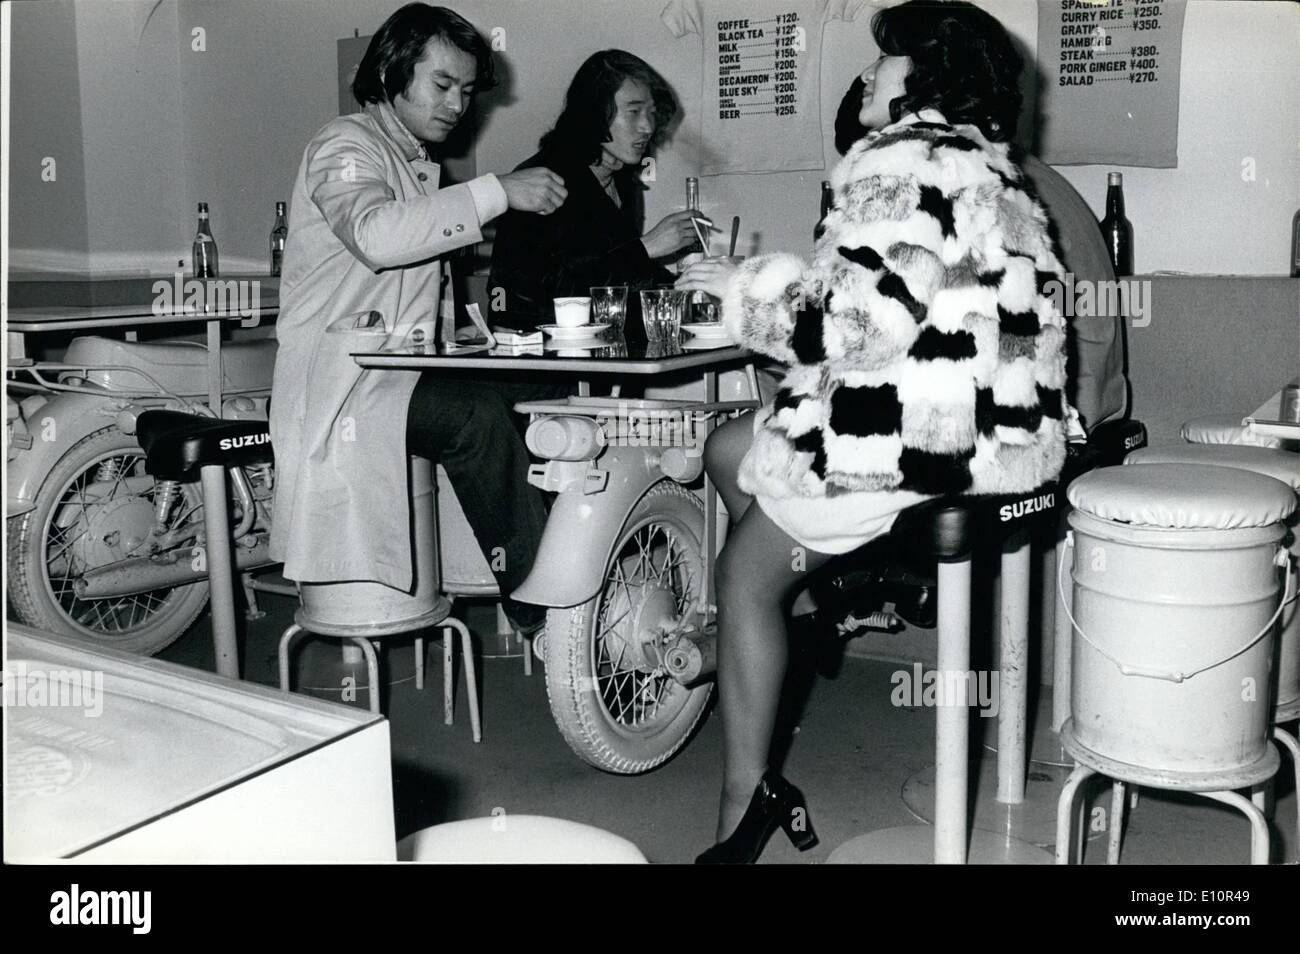 Dec. 12, 1973 - Tokyo snack bar uses junk as furniture; As an attraction, a snack bar in the populous district of Shinjukum Tokyo has utilized junk as a decor, Tables are supported by gaily colored motorcycles, and some of the seats are motorcycle, saddles or garbage cans with a padded top. - Stock Image